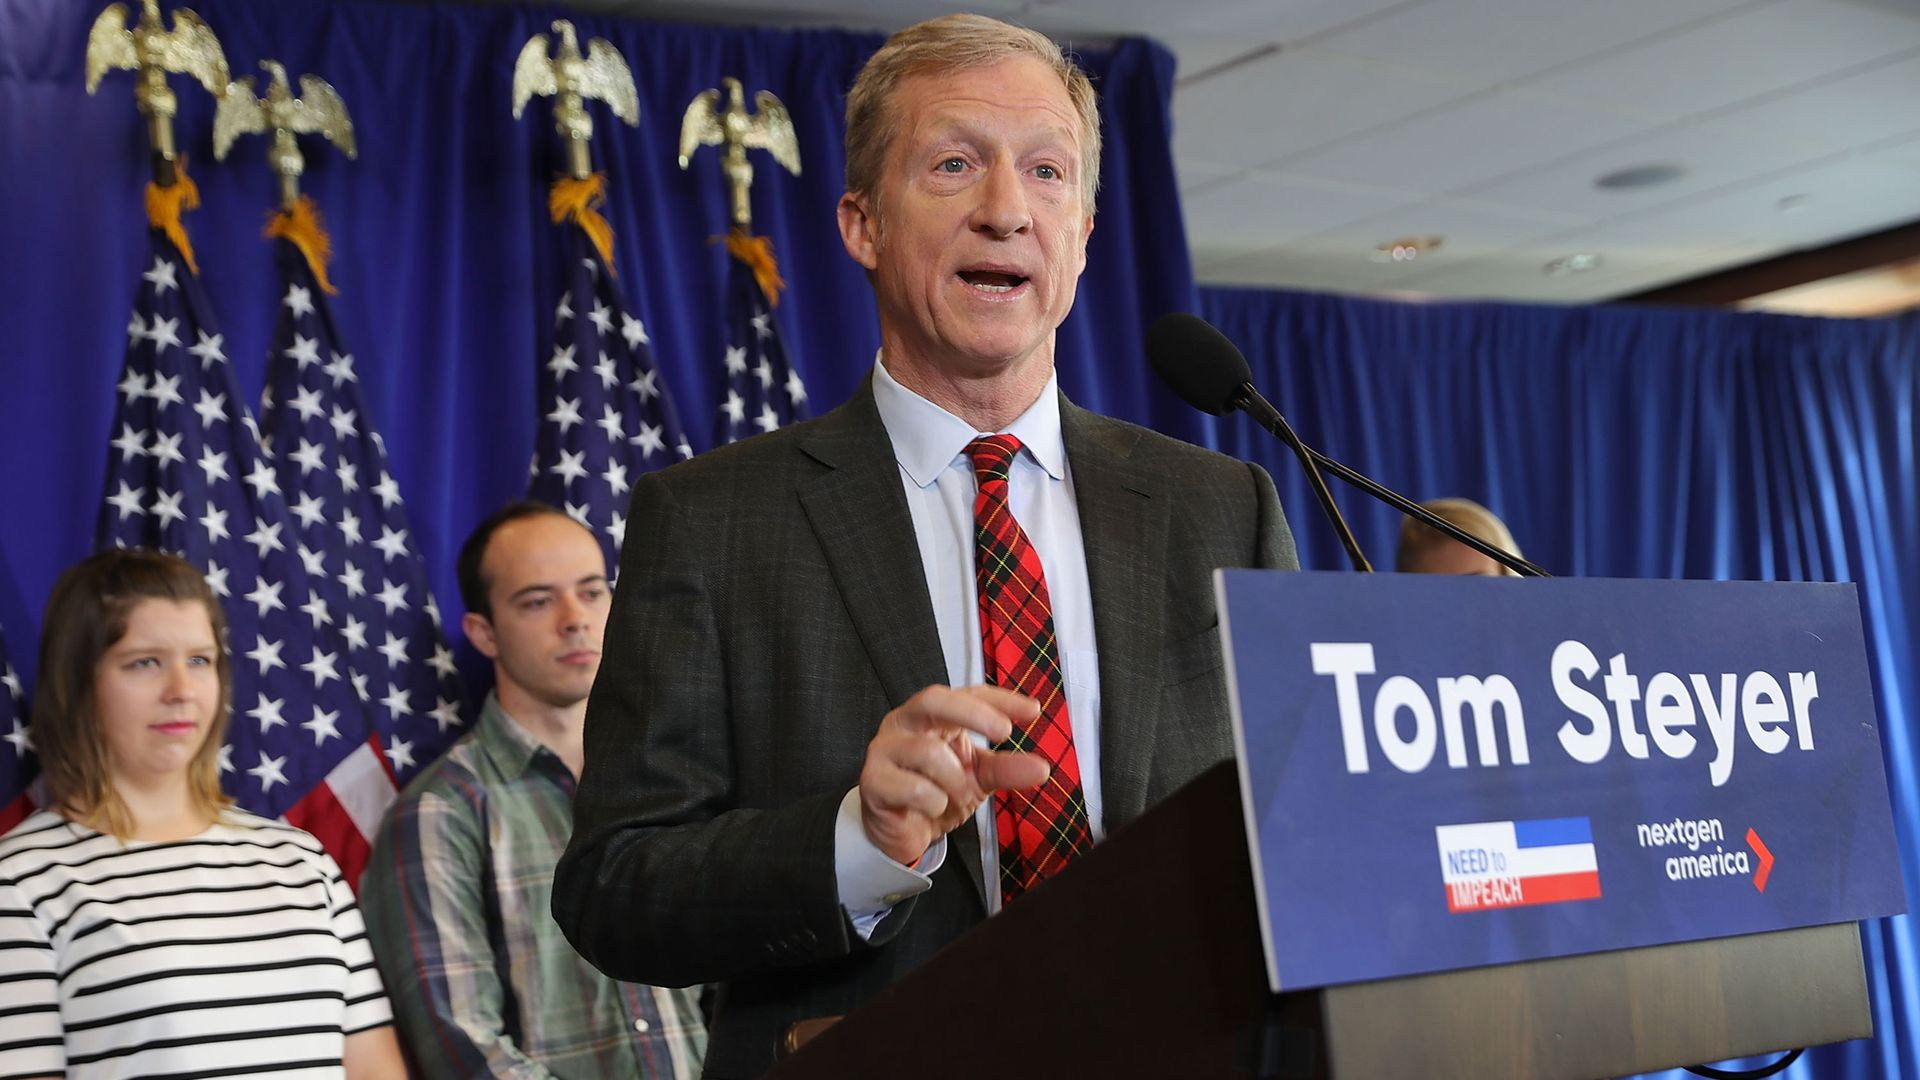 Tom Steyer speaks at an event in D.C.